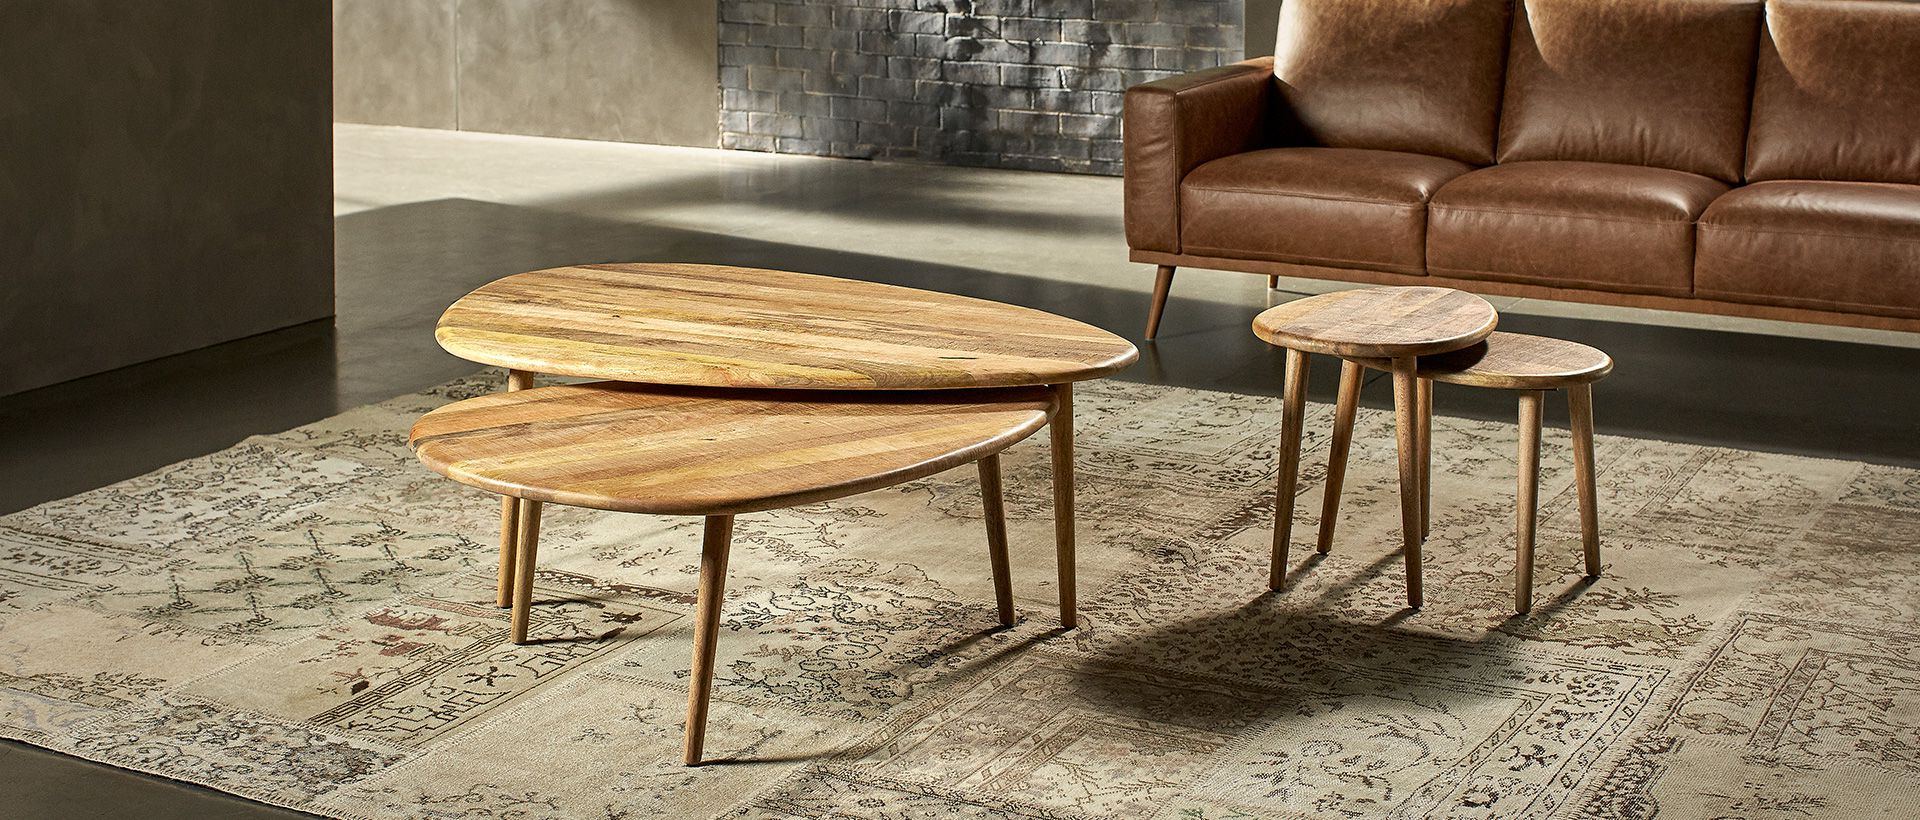 Nick Scali Furniture Throughout Brisbane Oval Coffee Tables (View 12 of 20)